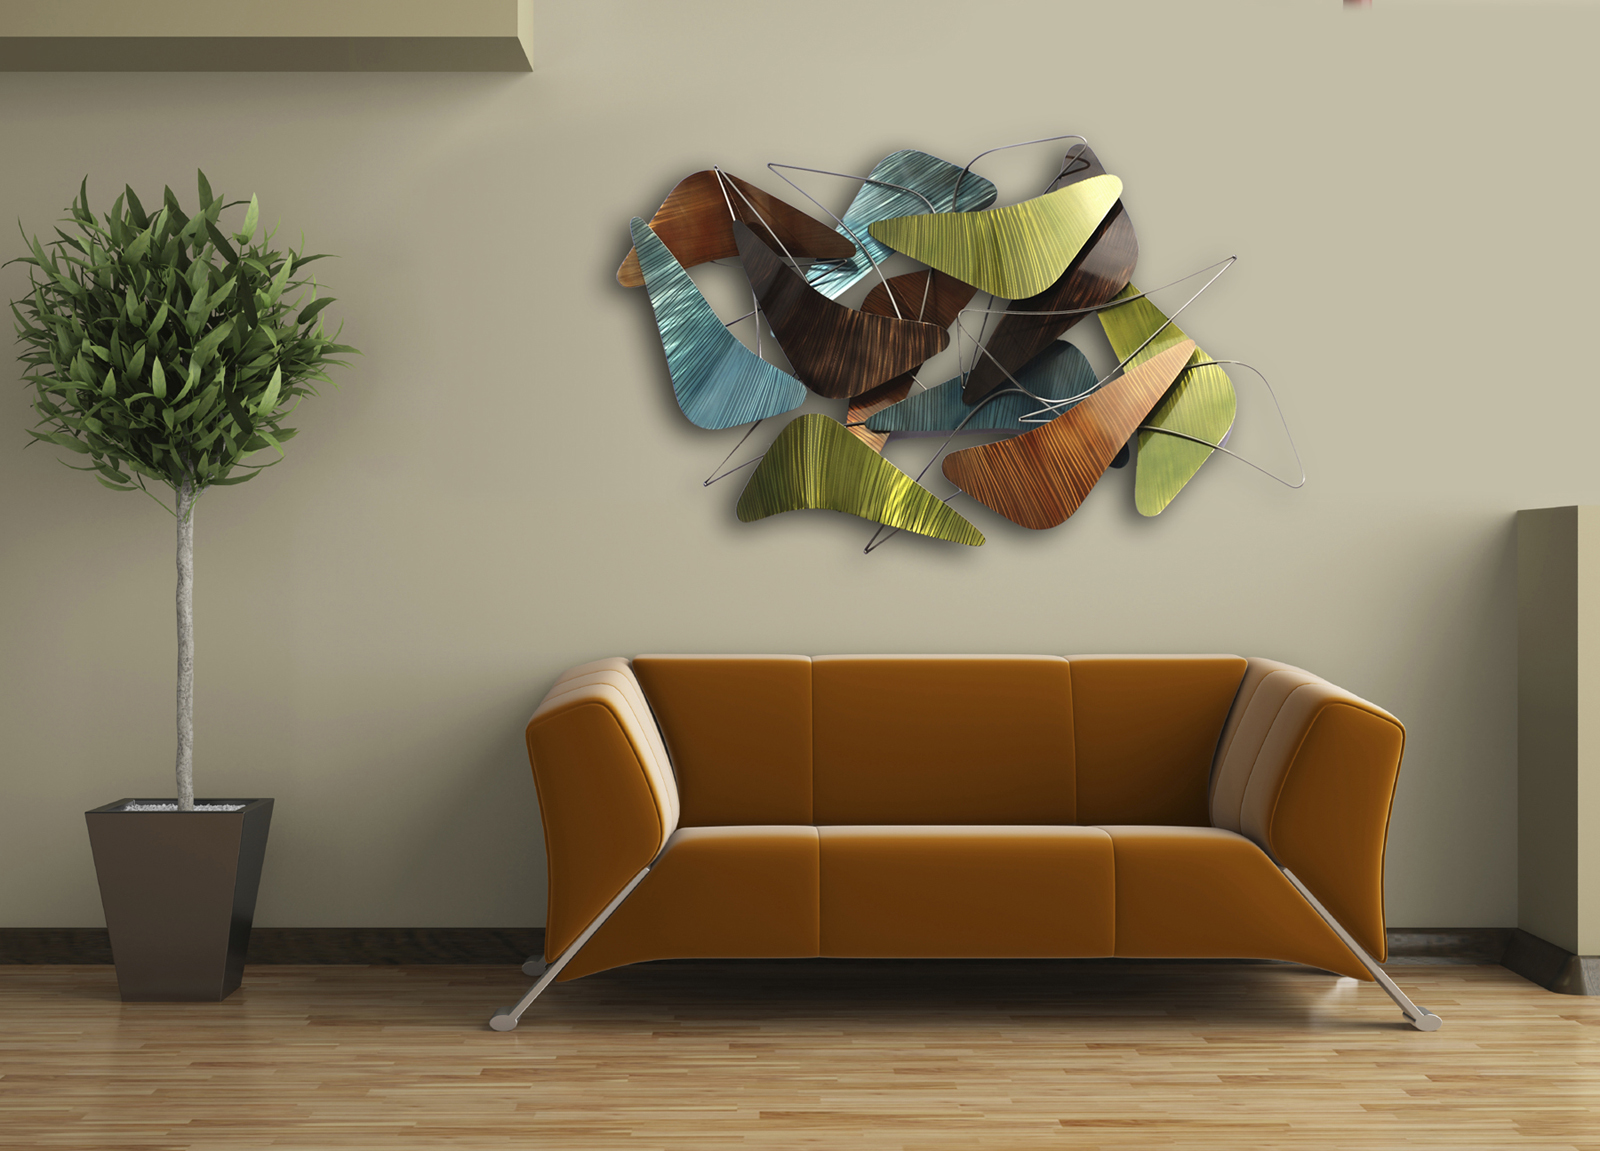 New Design Wall Art : Gift home today new contemporary wall designs are